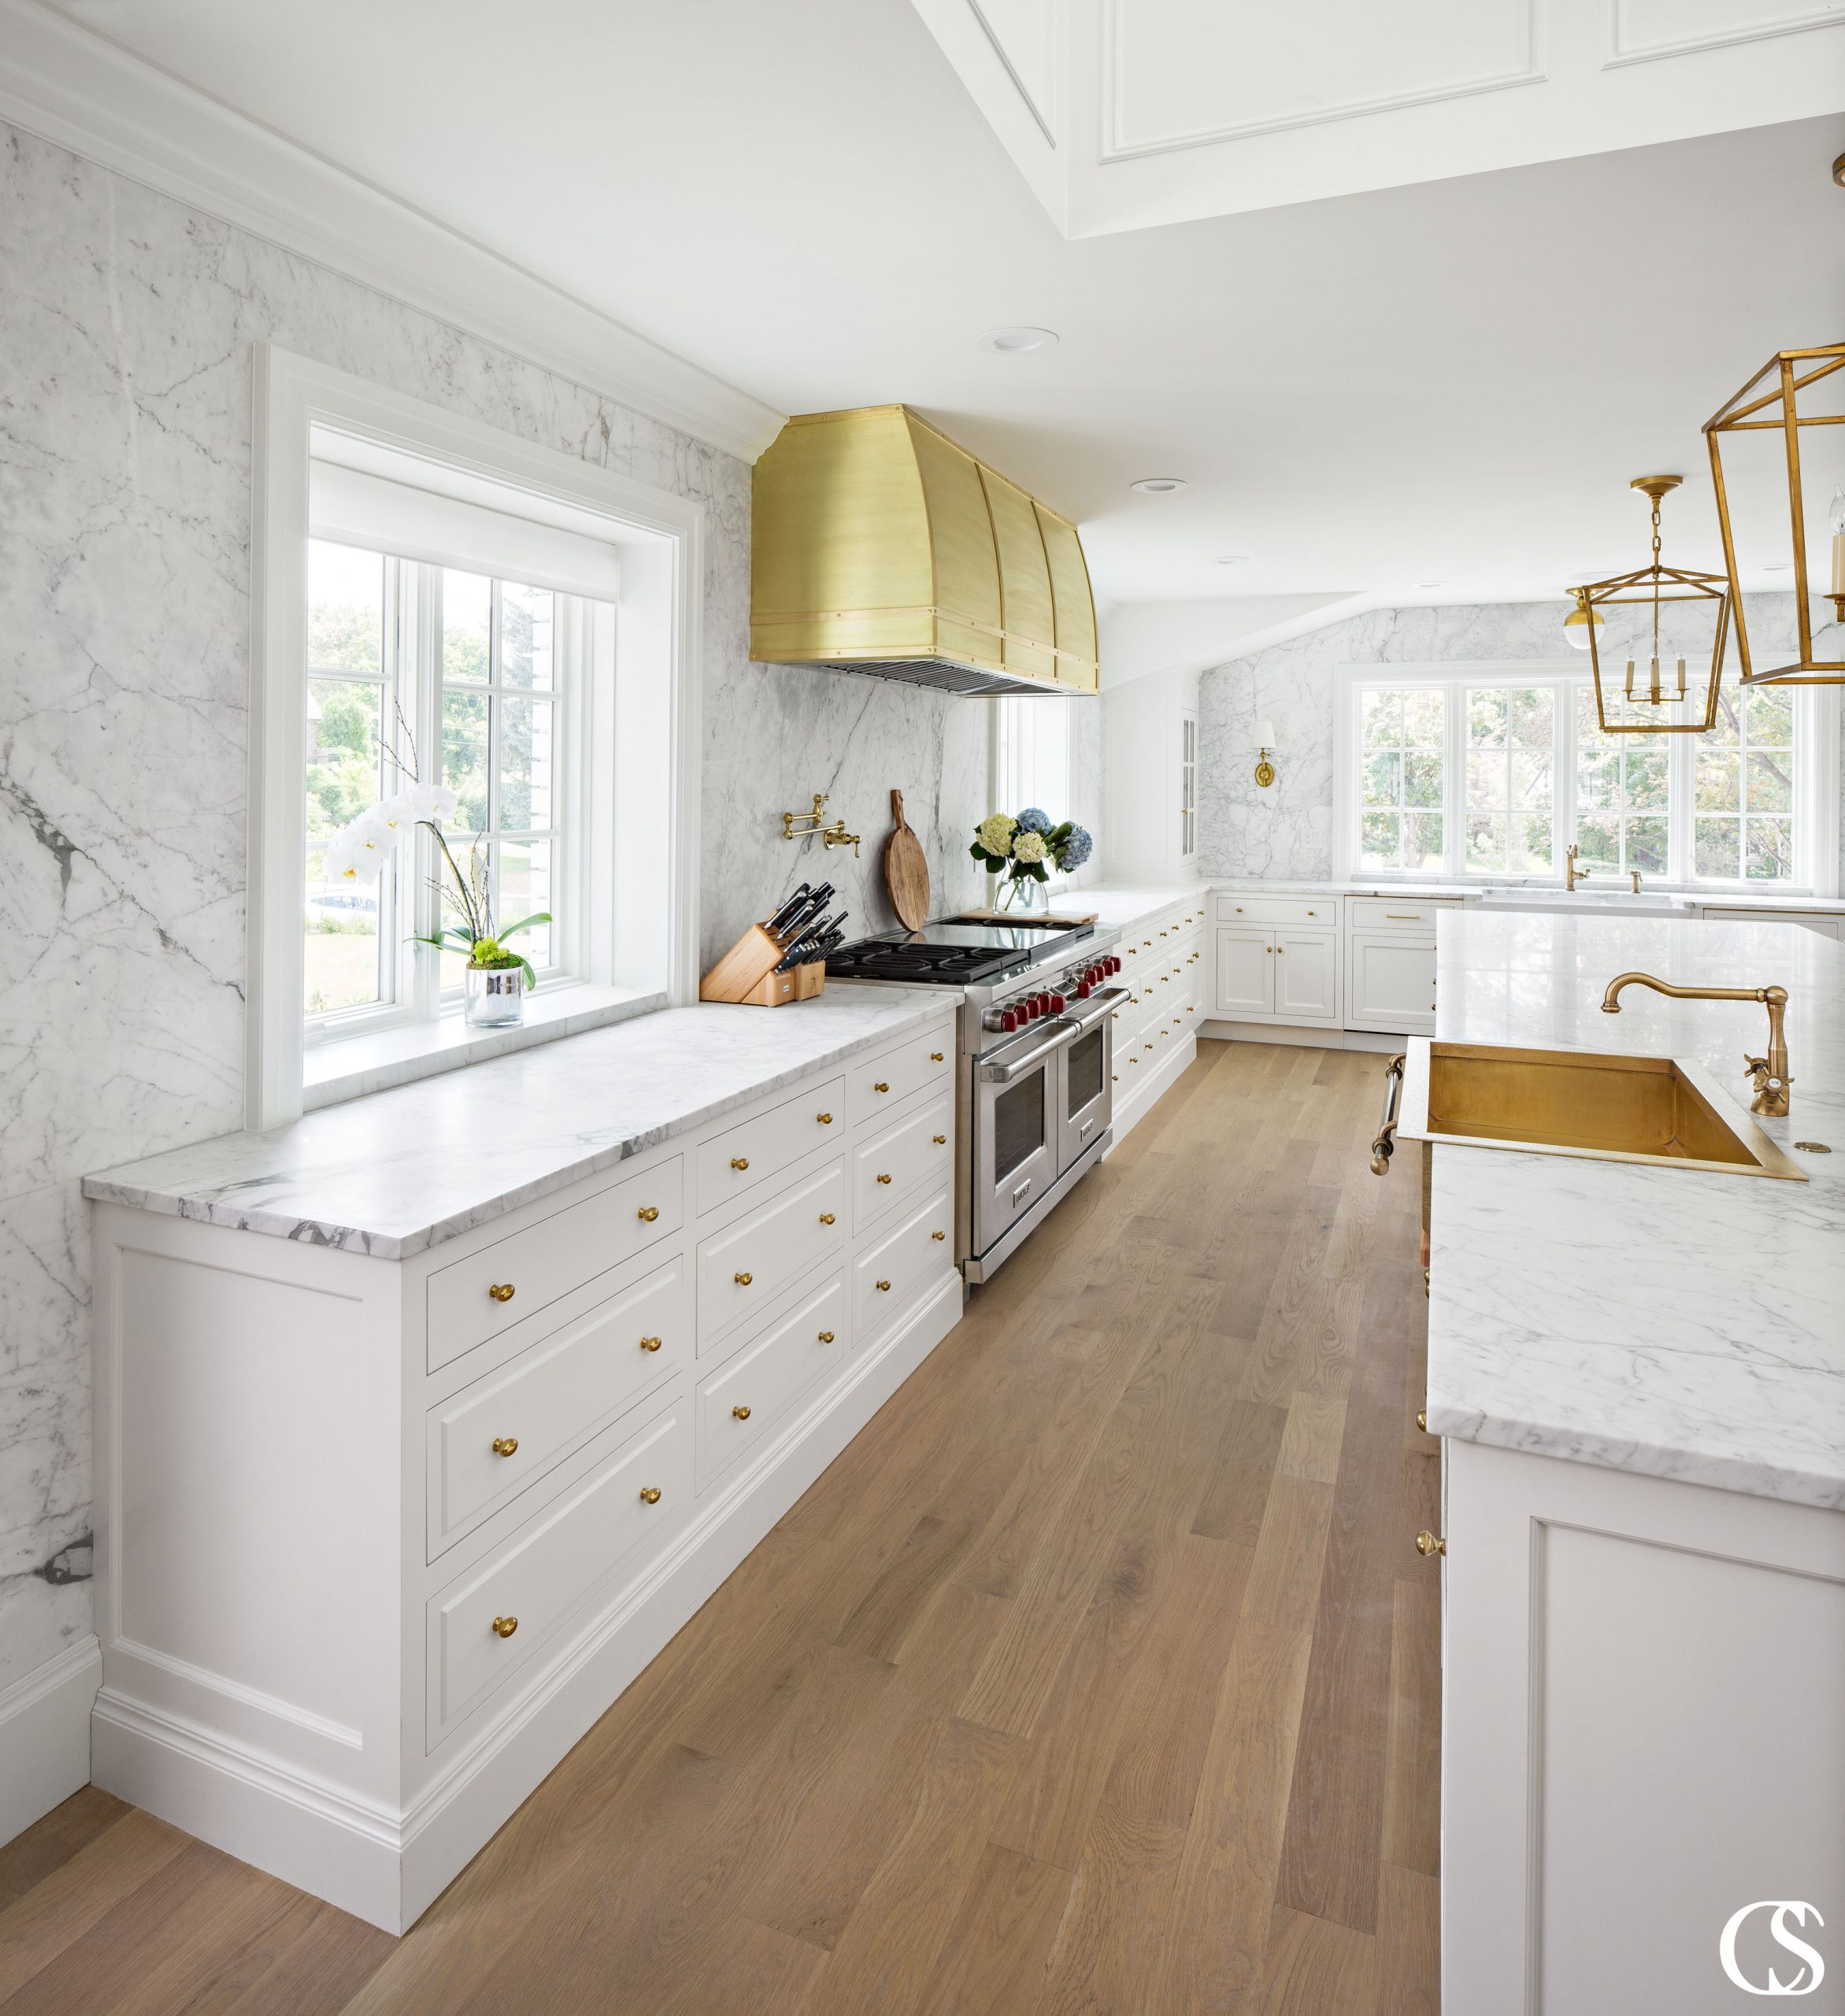 The best custom cabinetry and design is not only going to work hard for you and your family, but beautifully express your design aesthetic as well. We can make that happen. Check us out at ChristopherScottCabinetry.com to find more inspiration for your new white kitchen cabinets!